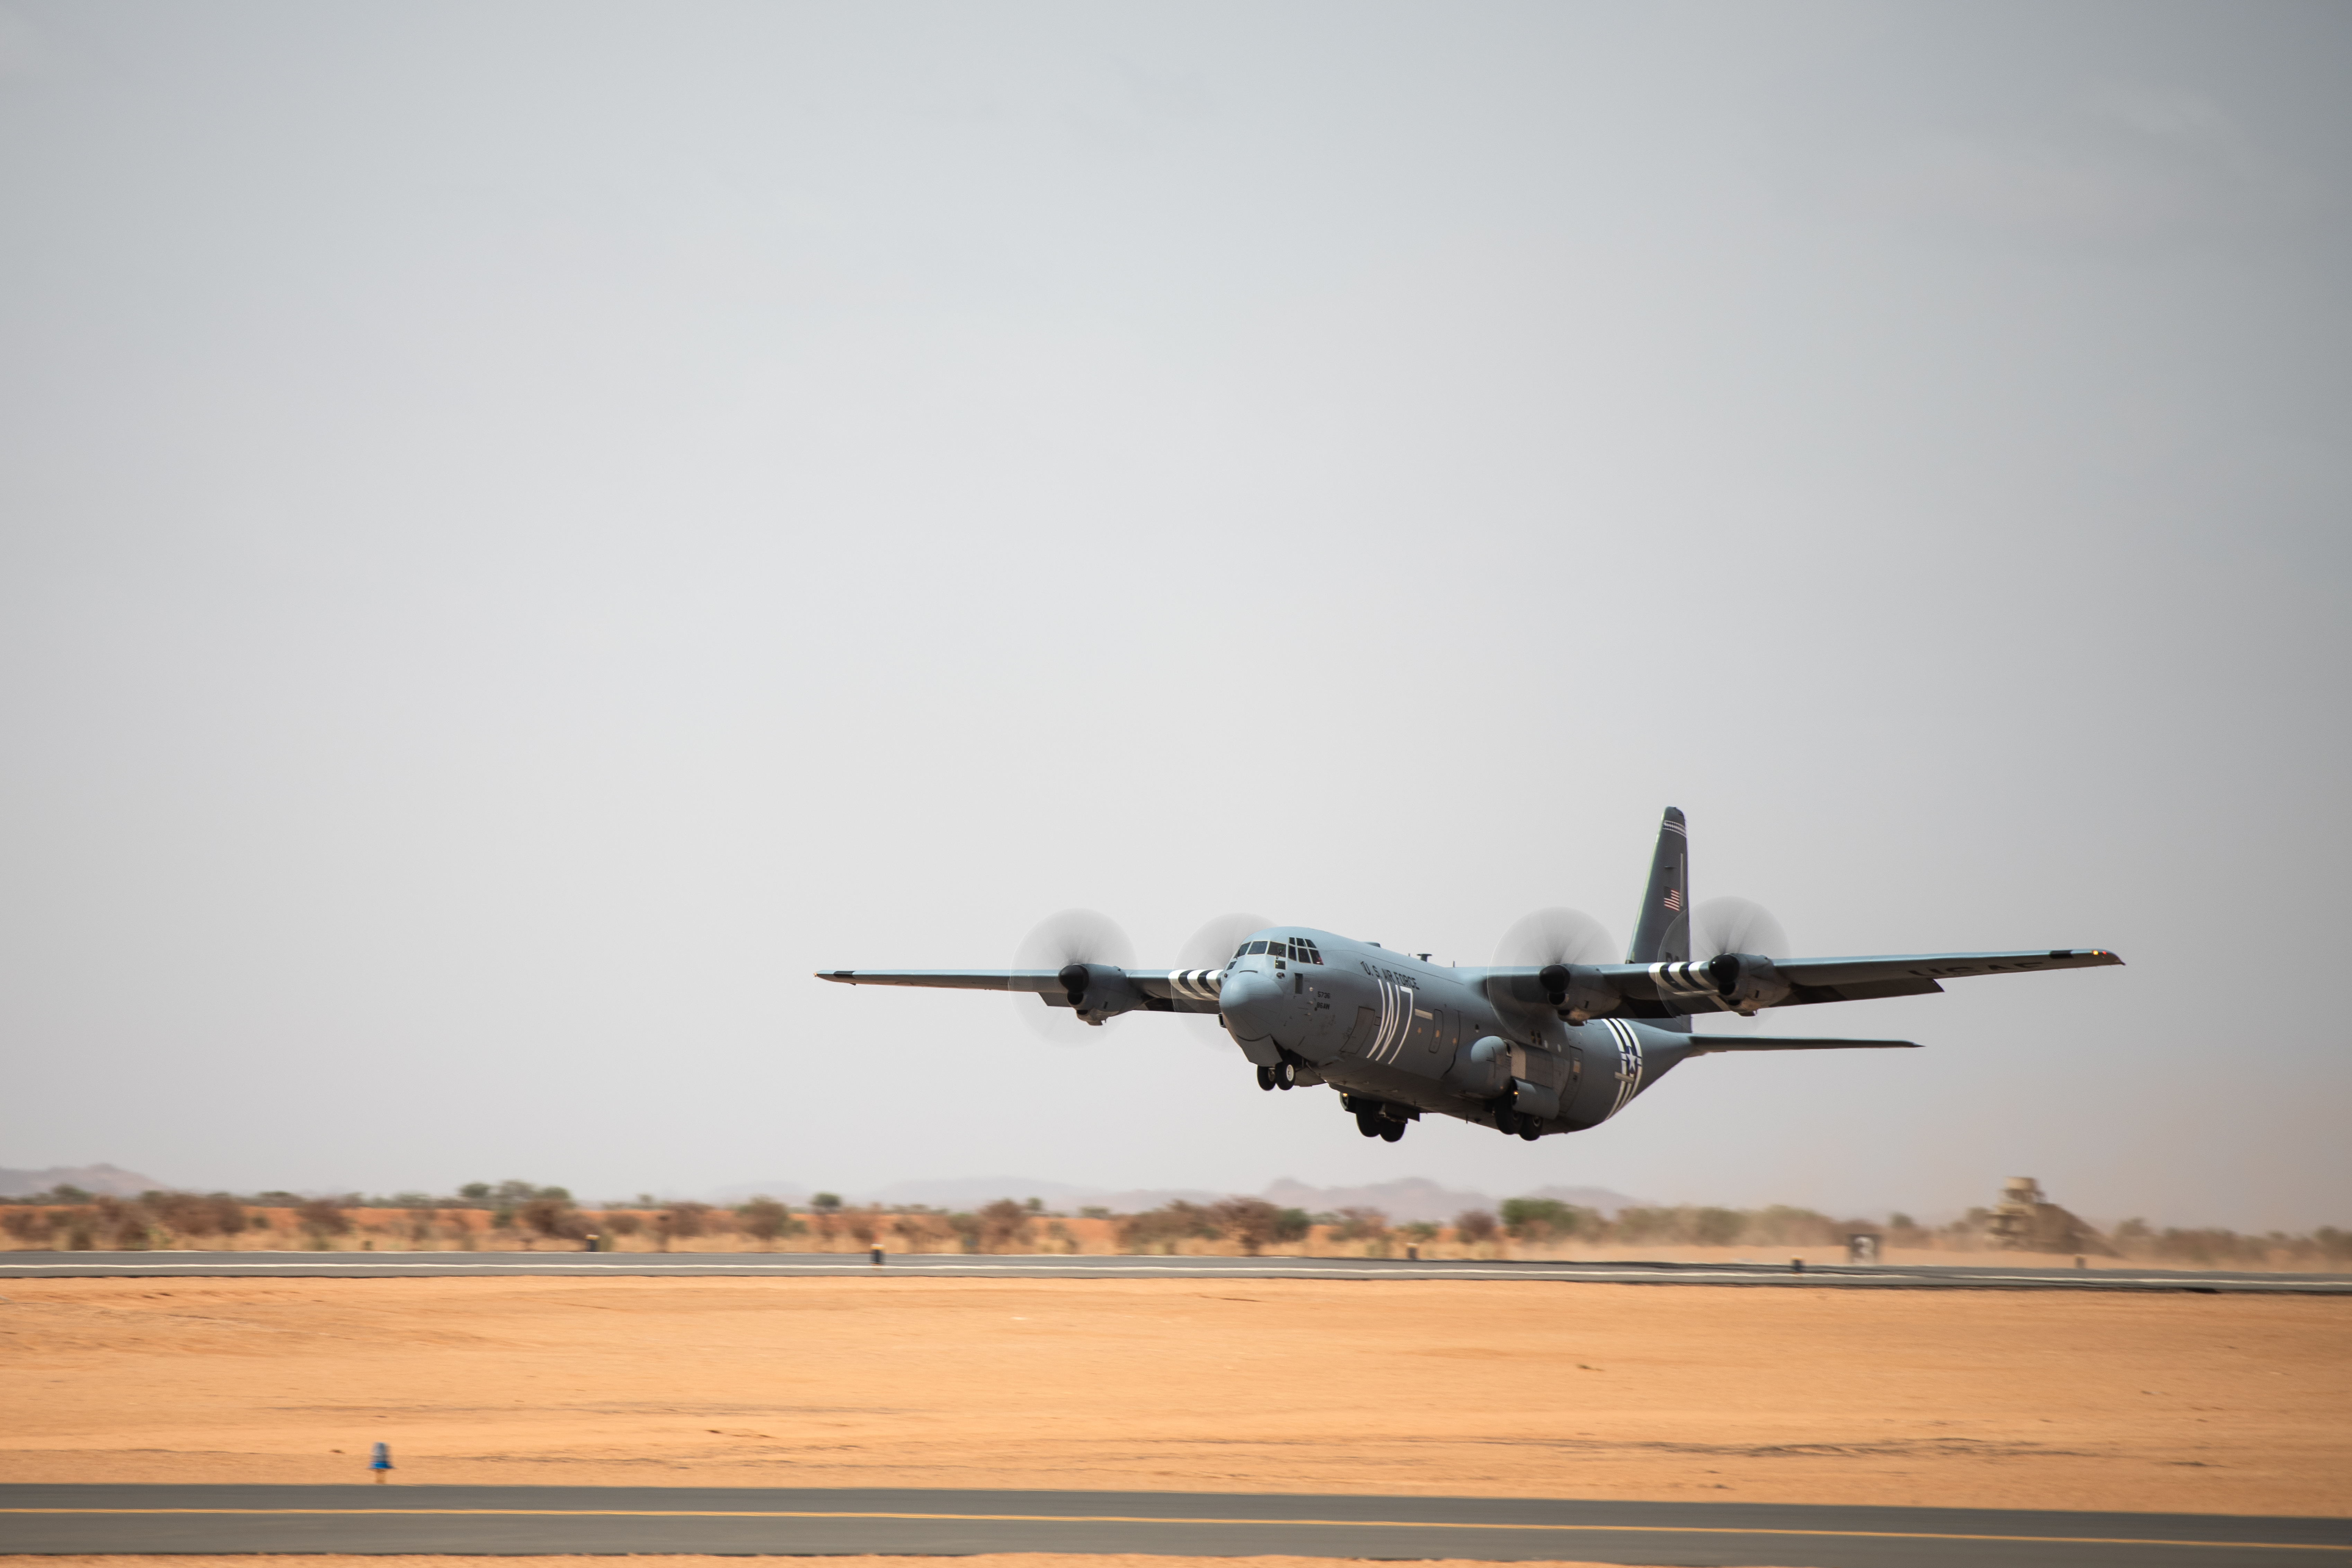 A C-130J Super Hercules lands at Air Base 201. The 6200-foot runway there allows any aircraft up to a C-17 Globemaster III to land. (Staff Sgt. Devin Boyer/Air Force)